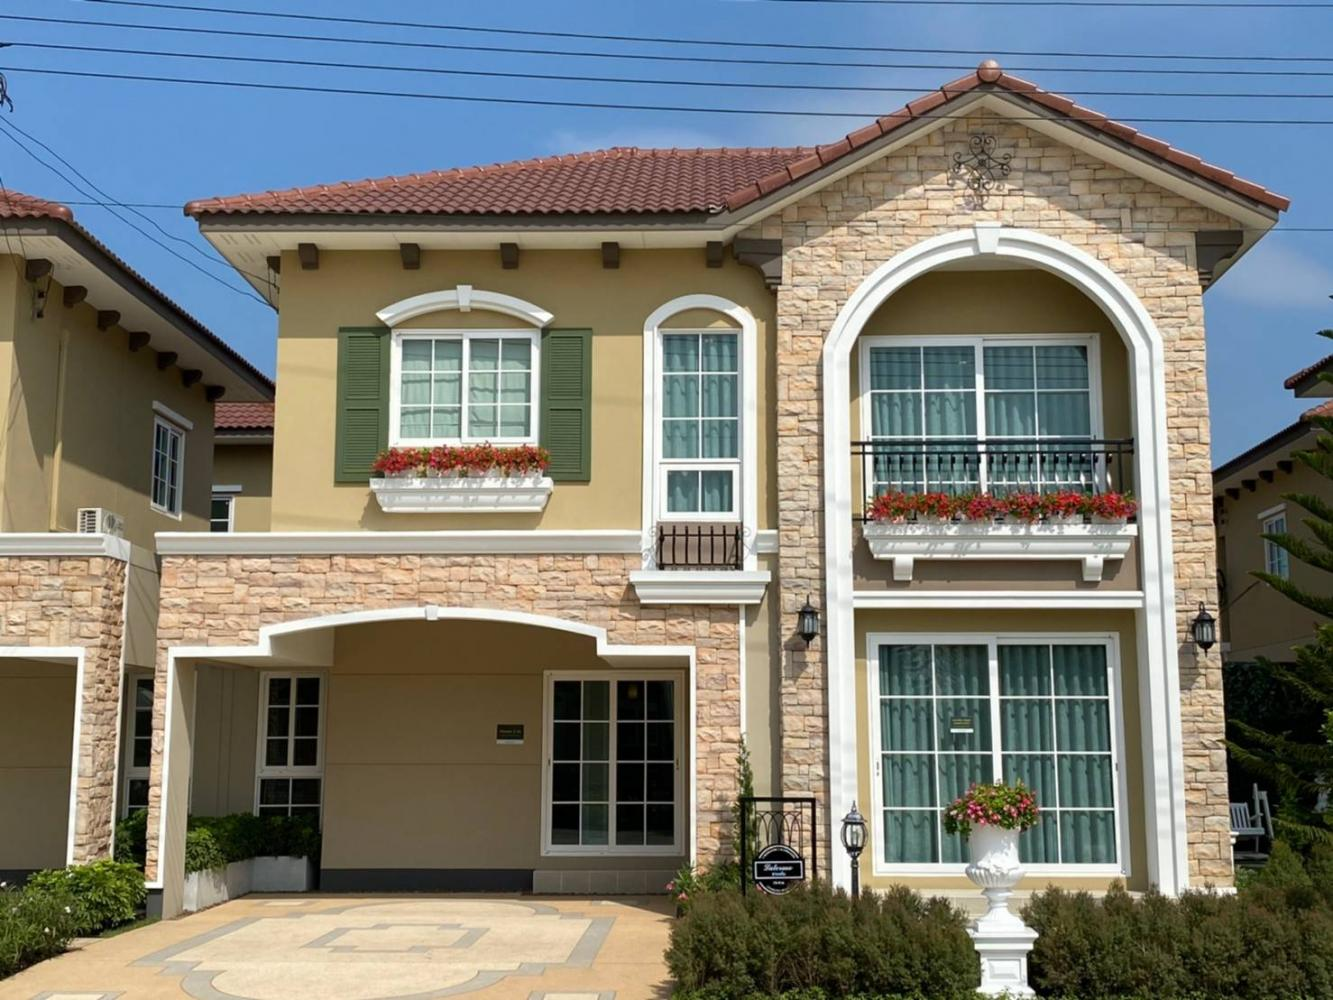 A sample unit of a semi-detached house. Frasers Property Thailand is wading into the segments of single detached houses in inner-city locations and luxury condos.